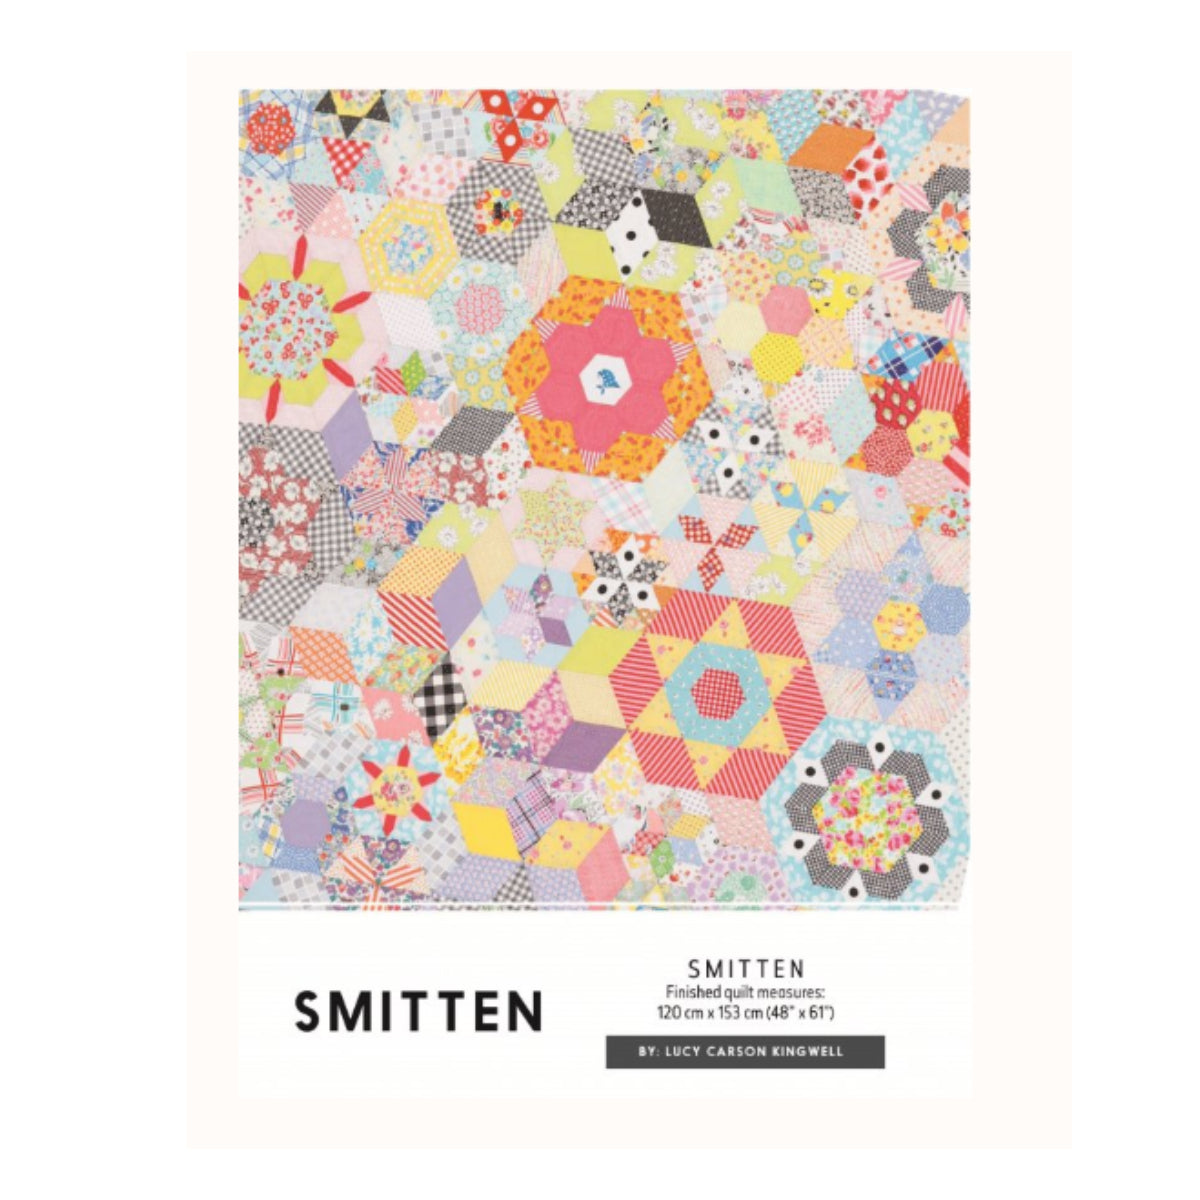 "Smitten Pattern by Lucy Carson Kingwell.  Paper Pieces Sold Separately.  Finished Quilt Size - 48"" x 61""."